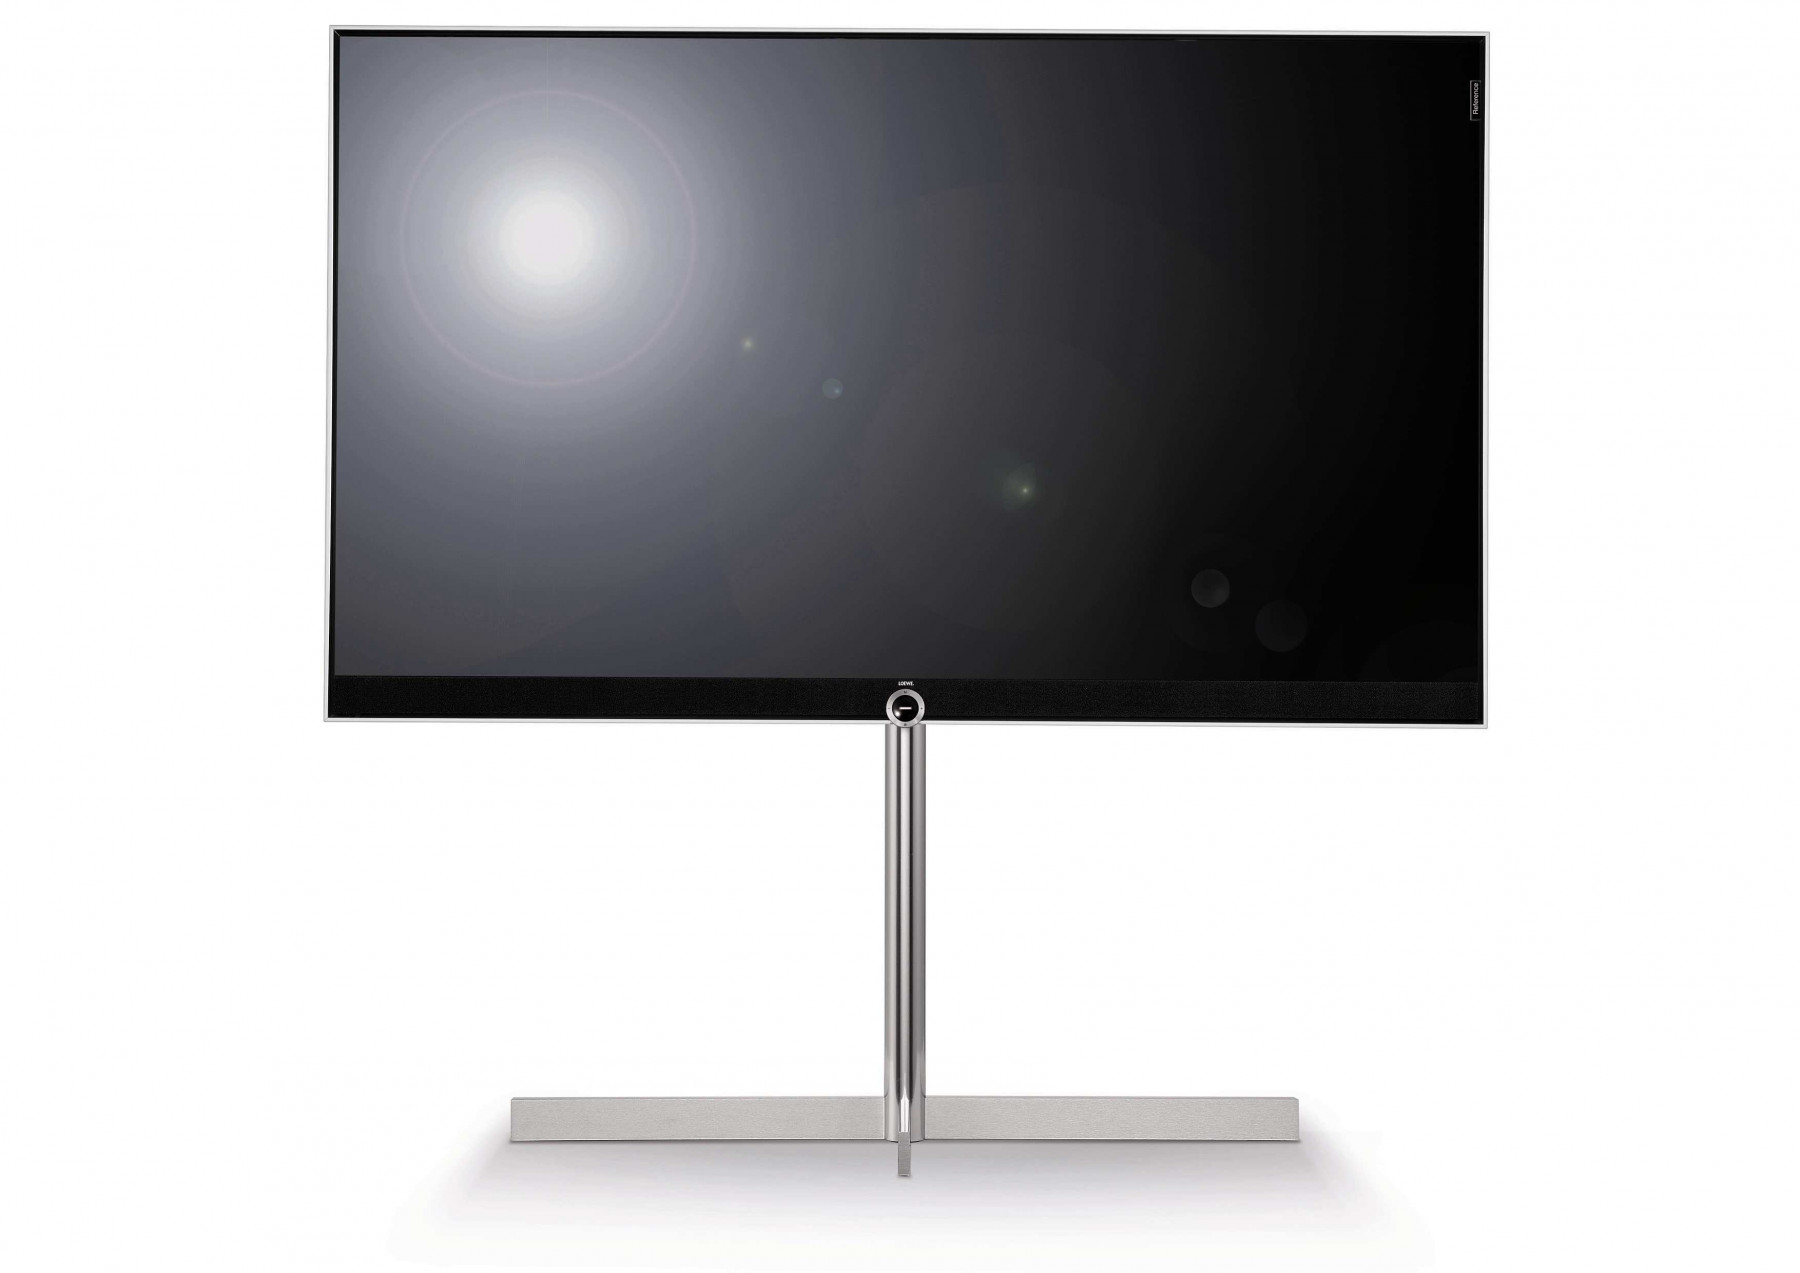 loewe reference 75 dr uhd silber sonderangebot demo ger t loewe fernseher. Black Bedroom Furniture Sets. Home Design Ideas